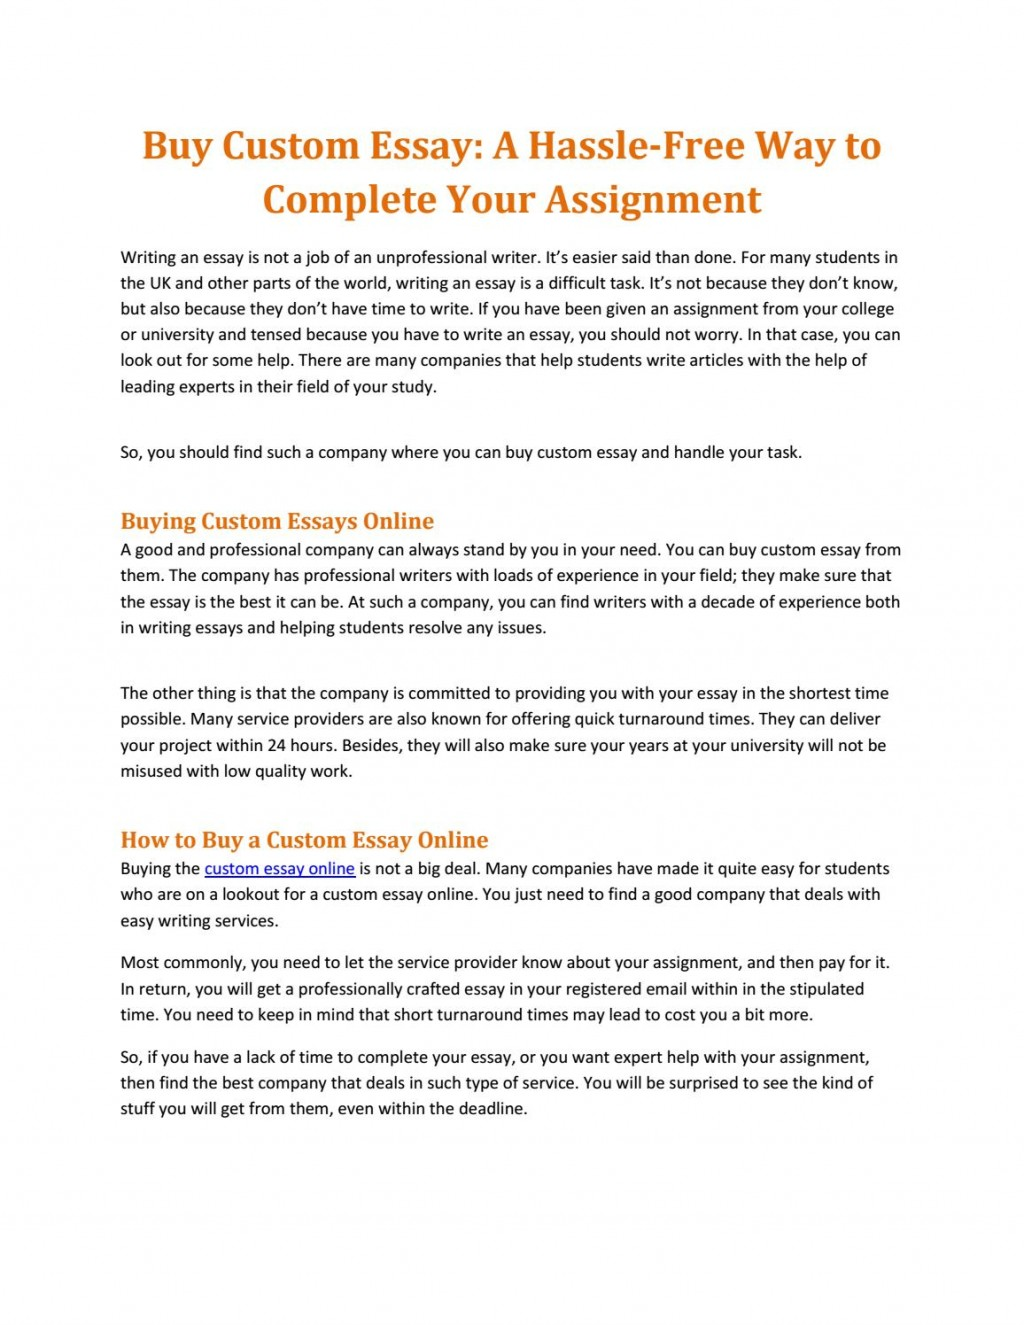 001 Page 1 Buy Custom Essays Online Essay Impressive Large